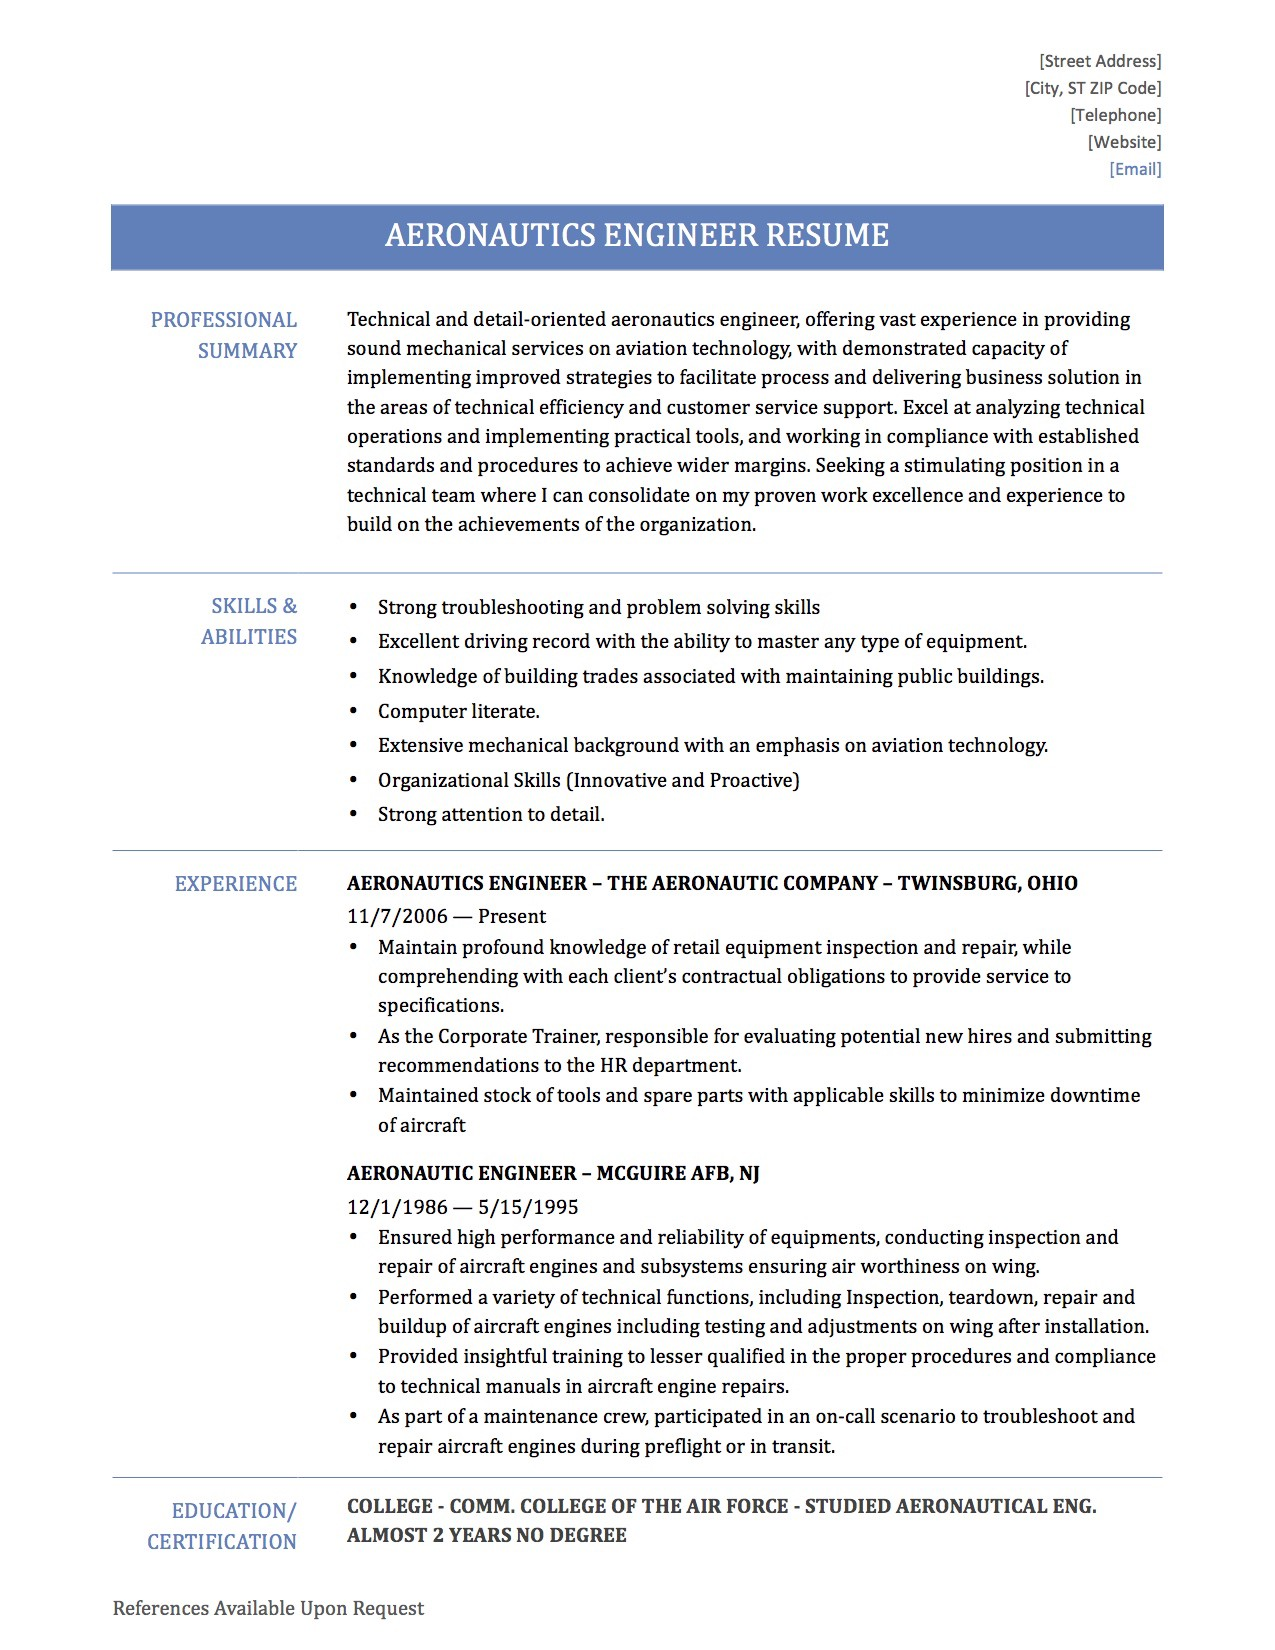 aeronautical engineer resume objective march aerospace engineering student Resume Aerospace Engineering Student Resume